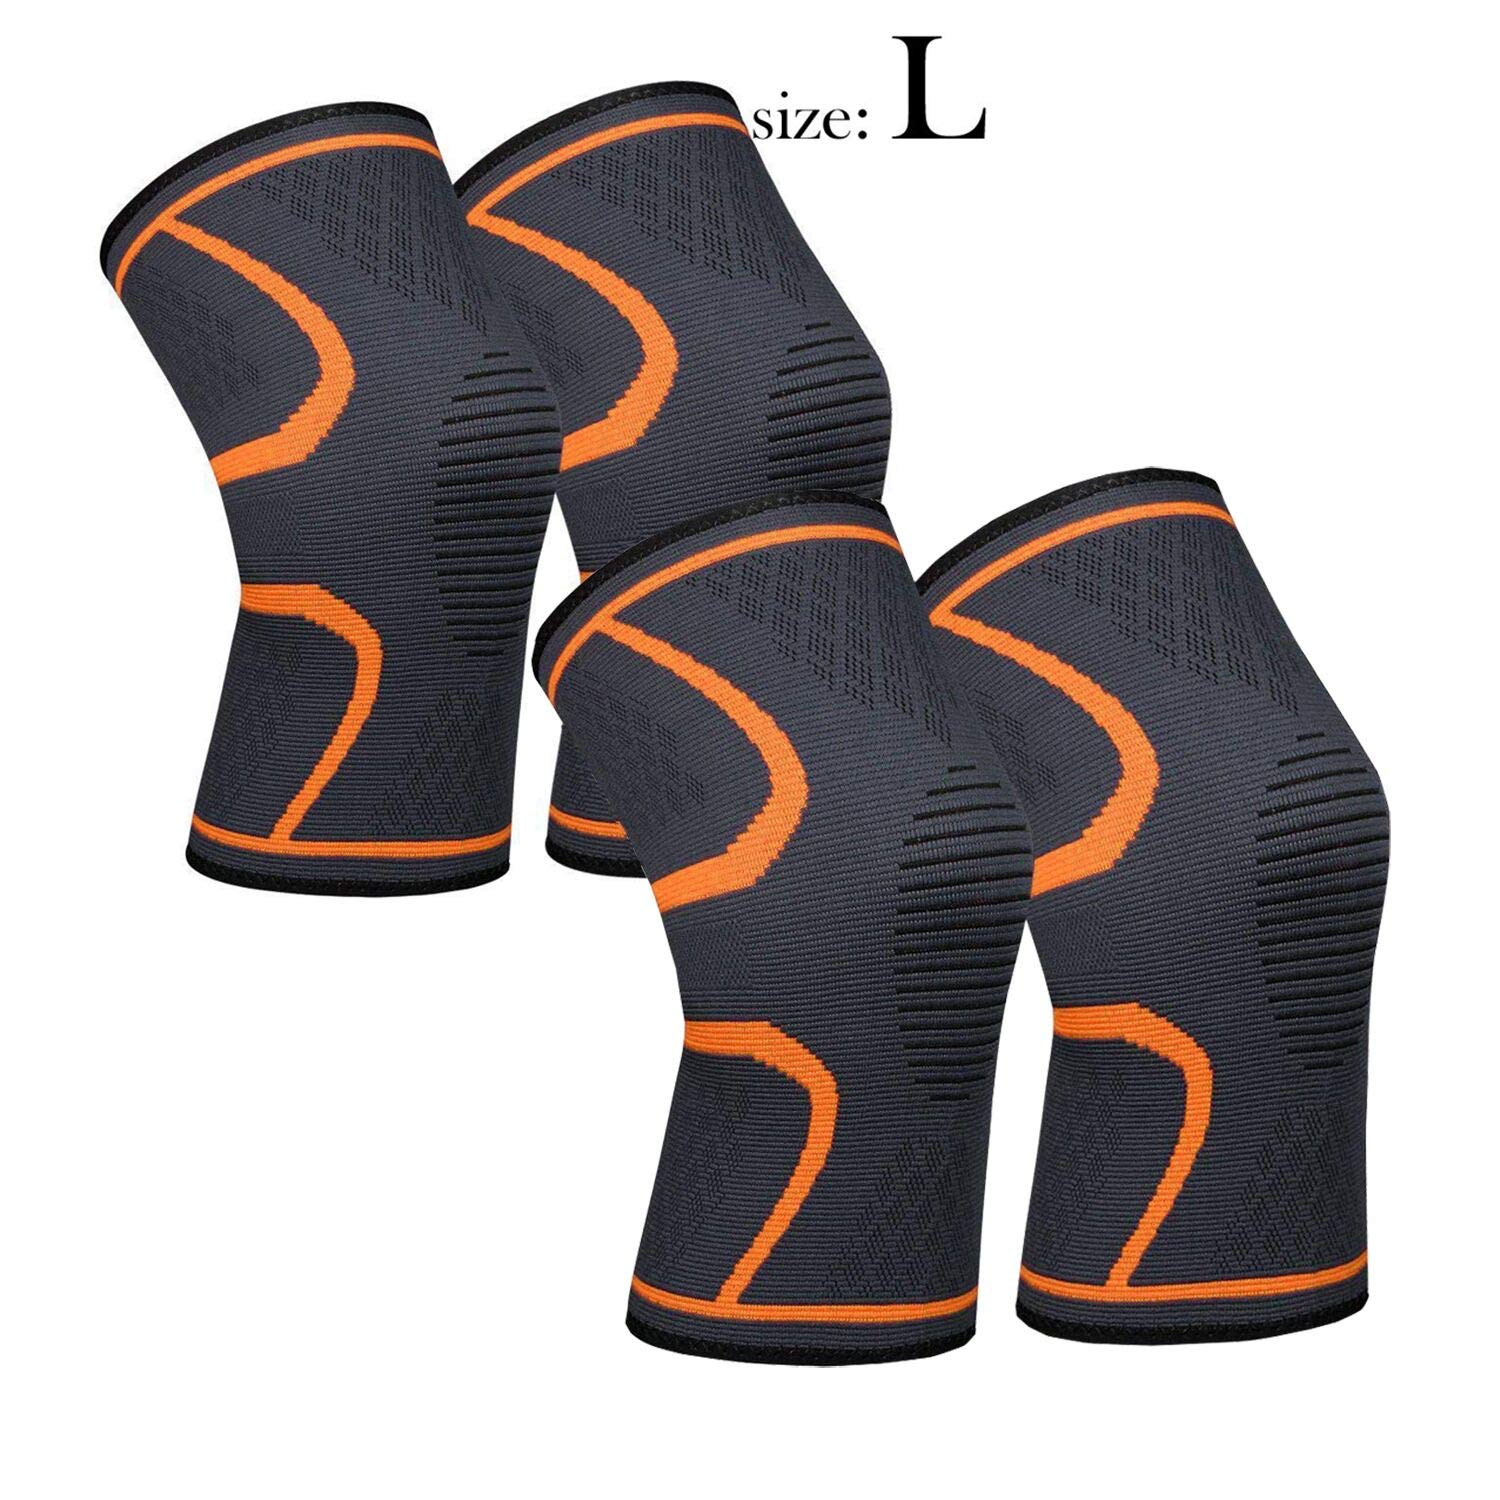 Knee Sleeve, 711TEK Compression Knee Brace for Knee Pain - Premium Recovery Knee Support for Running, Jogging, Sports, Joint Pain Relief, Arthritis - for Men & Women (Orange-L-4Pcs)